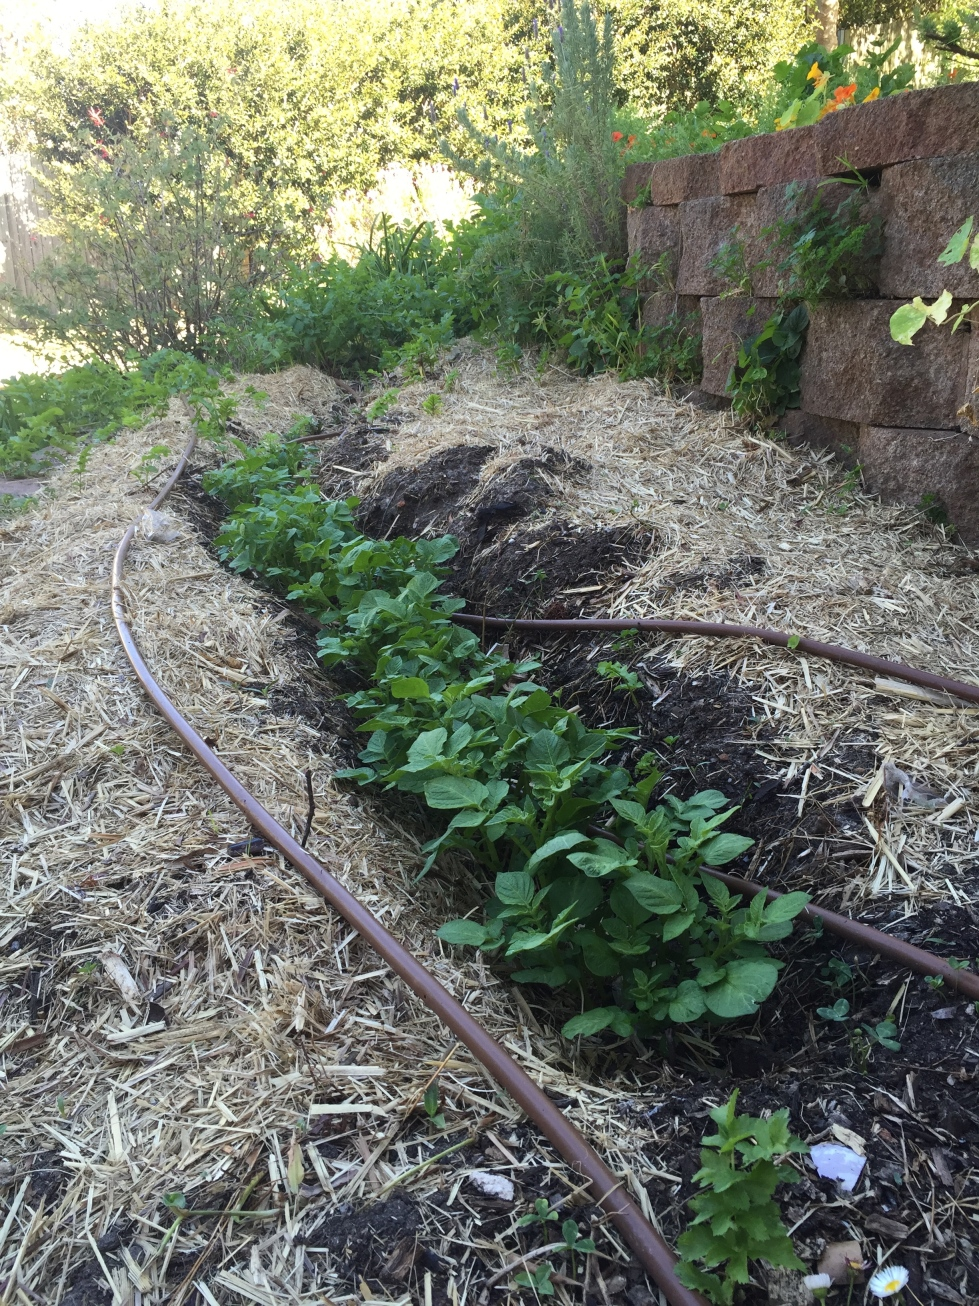 Potatoes shooting out the trench